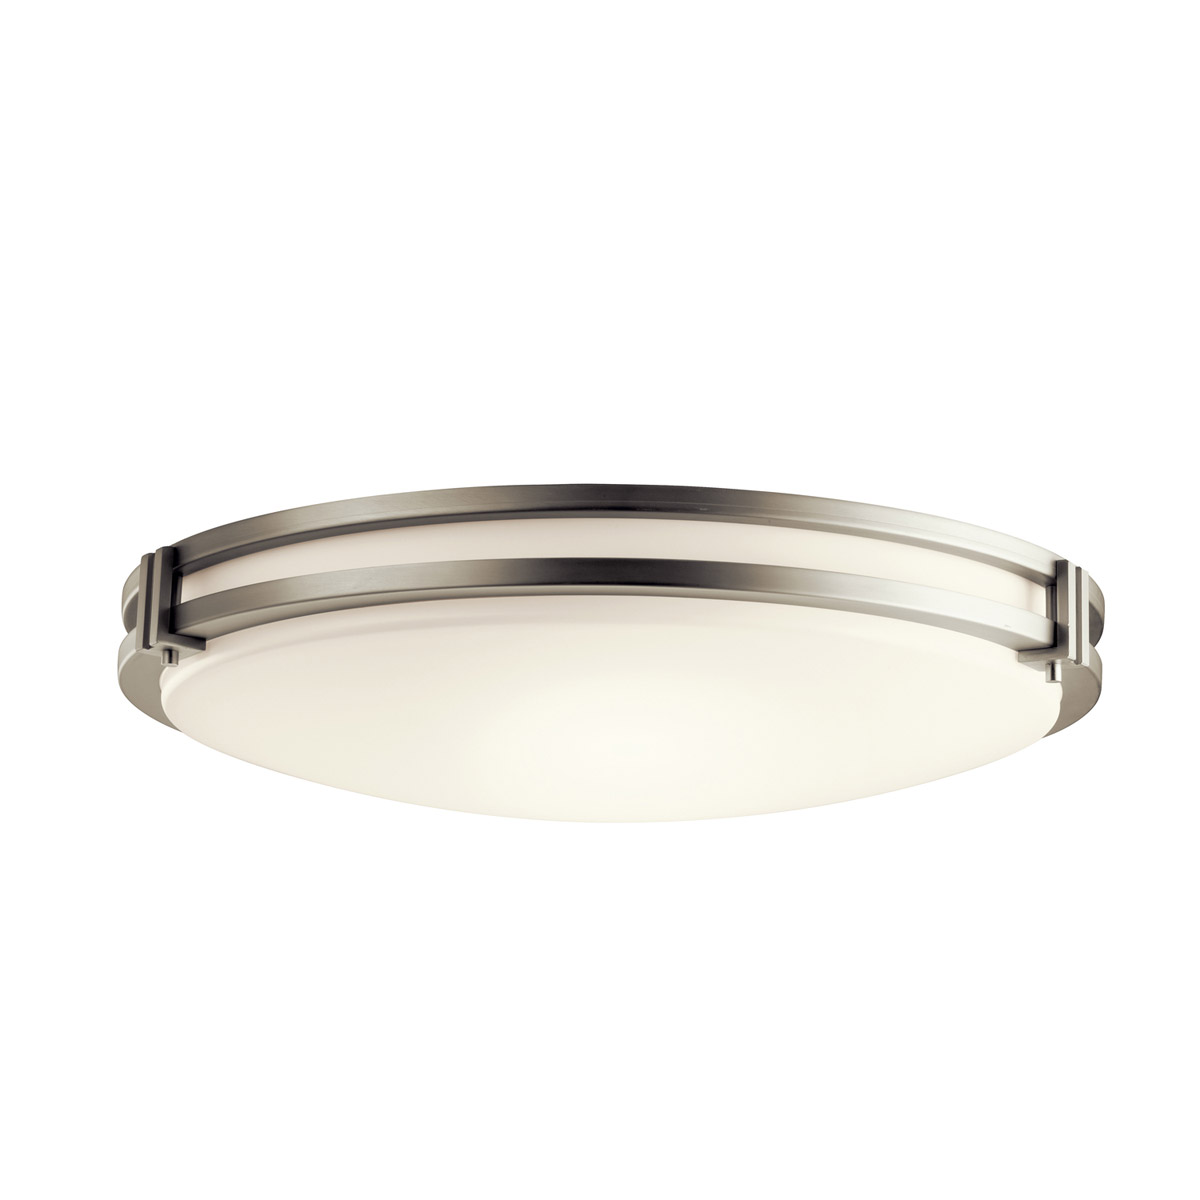 Signature 3 Light 24 inch Brushed Nickel Flush Mount Ceiling Light